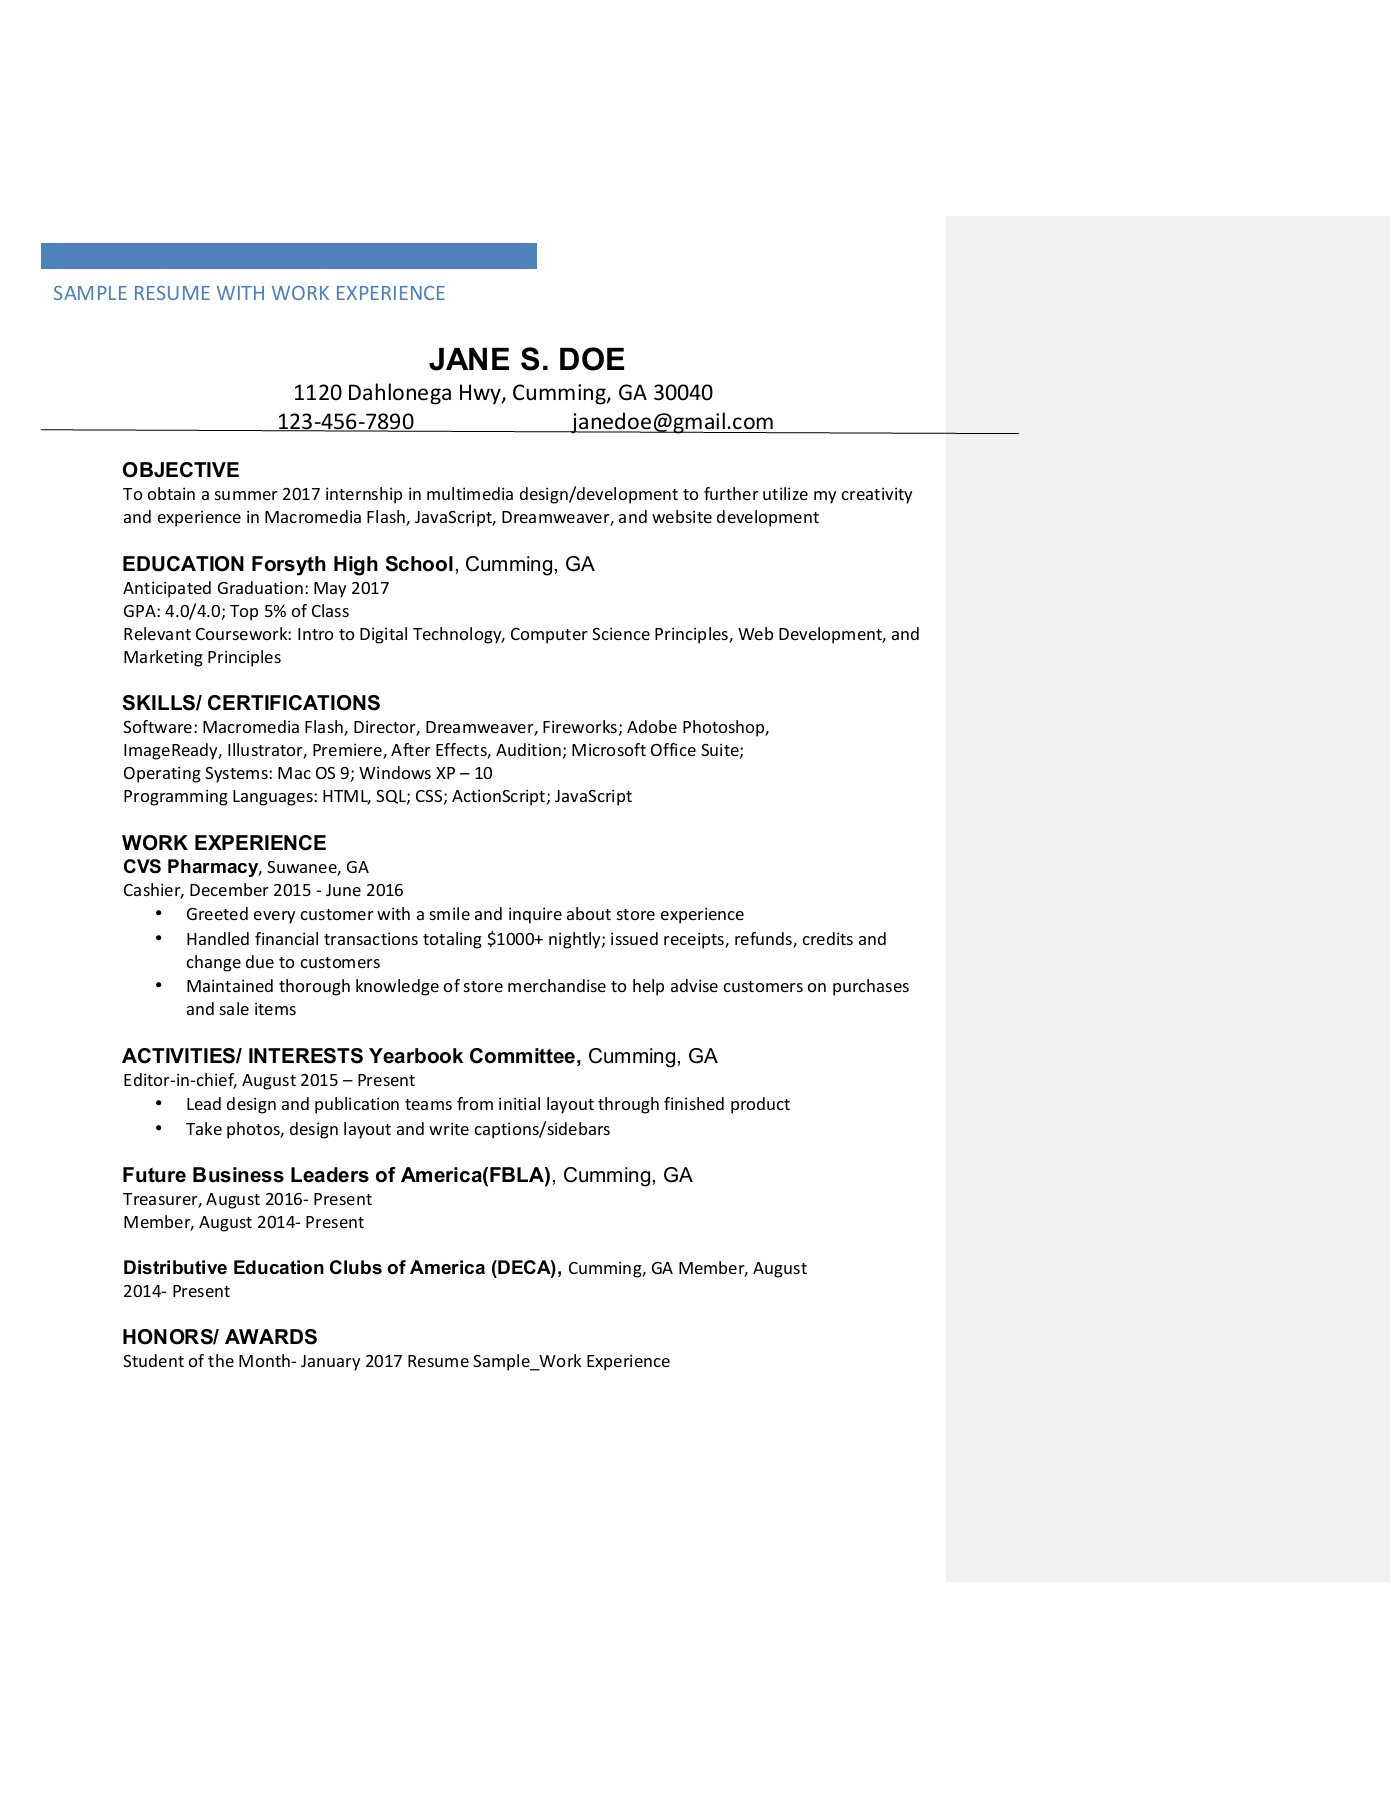 Resume and Cover Letter IDT